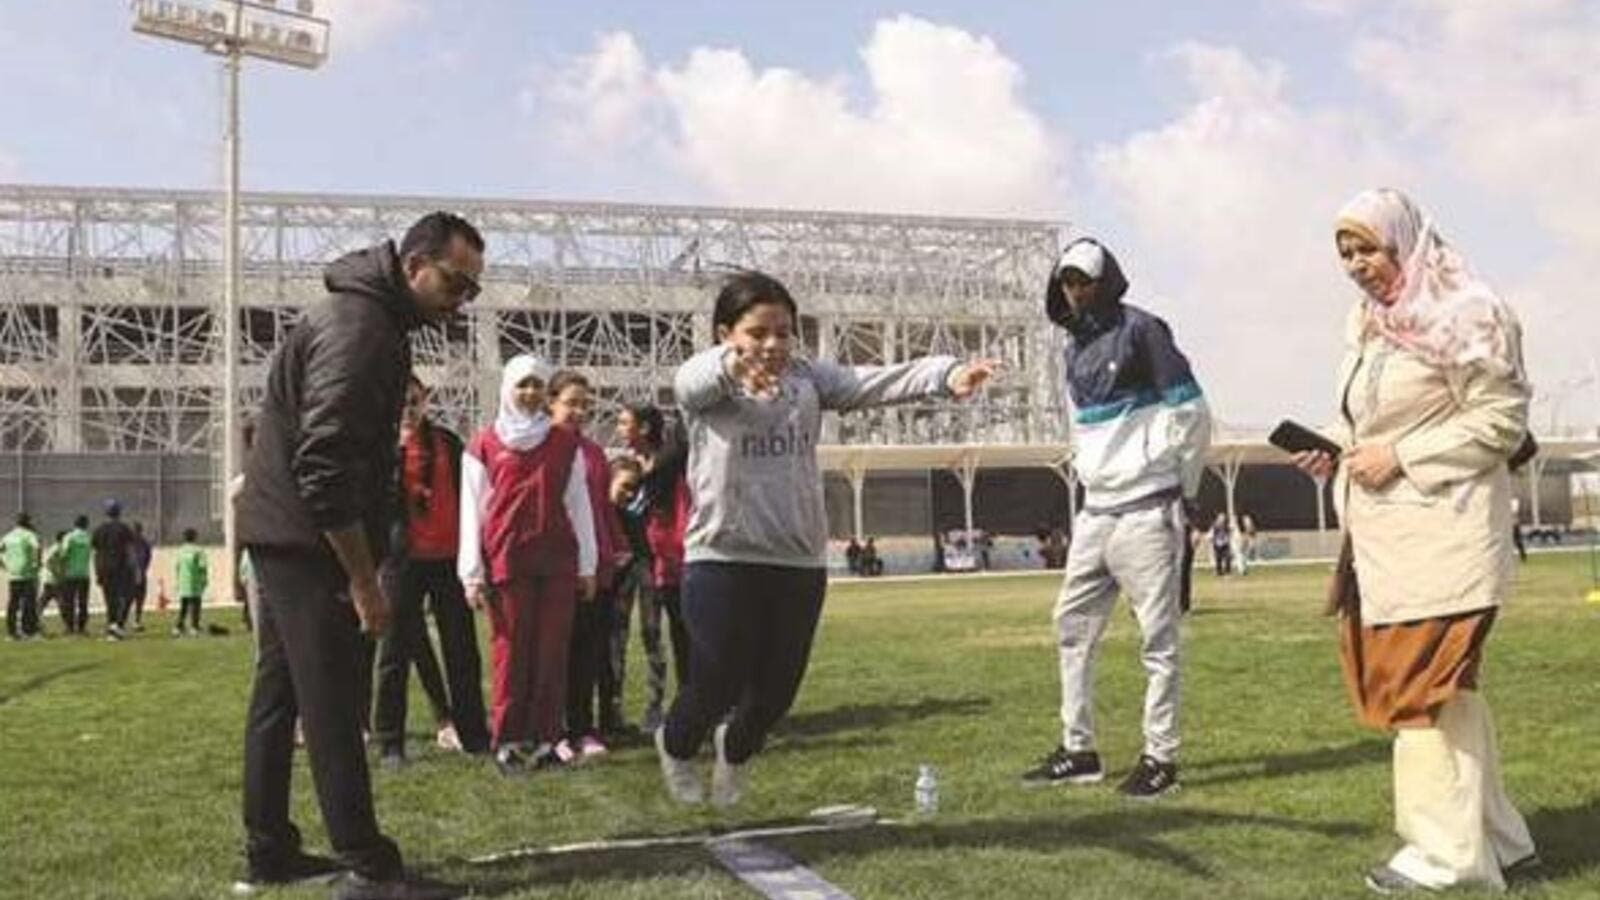 IAAF World Athletics Championships Doha 2019 Local Organising Committee has been running an engaging schools programme attracting hundreds of girls to take up sport and physical activities. (Photo: Gulf Times)